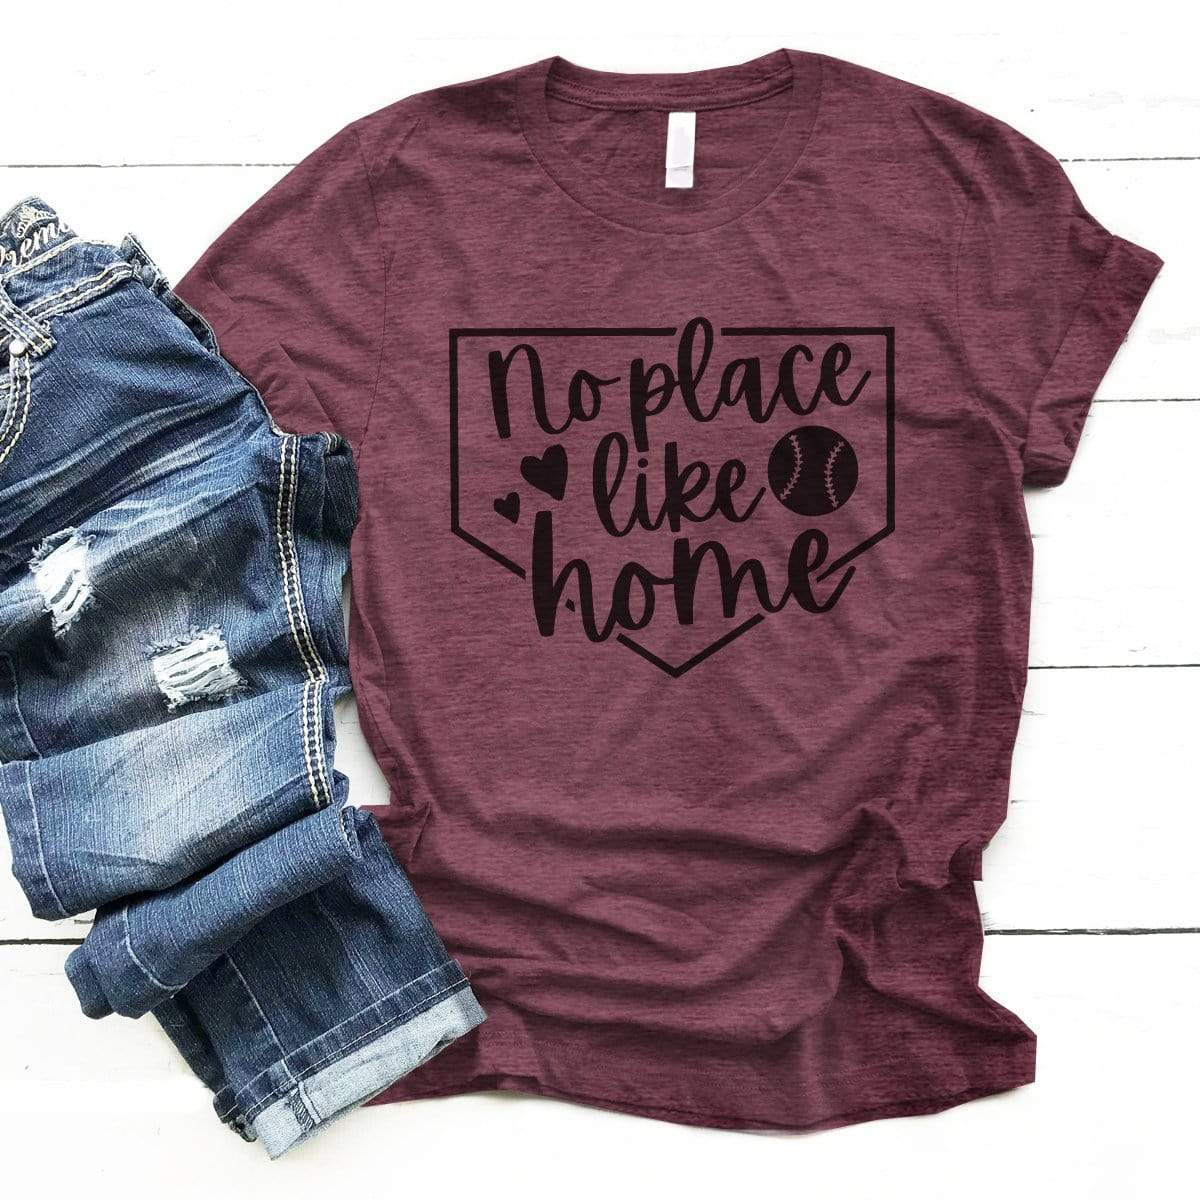 No Place Like Home - Premium Unisex T-Shirt